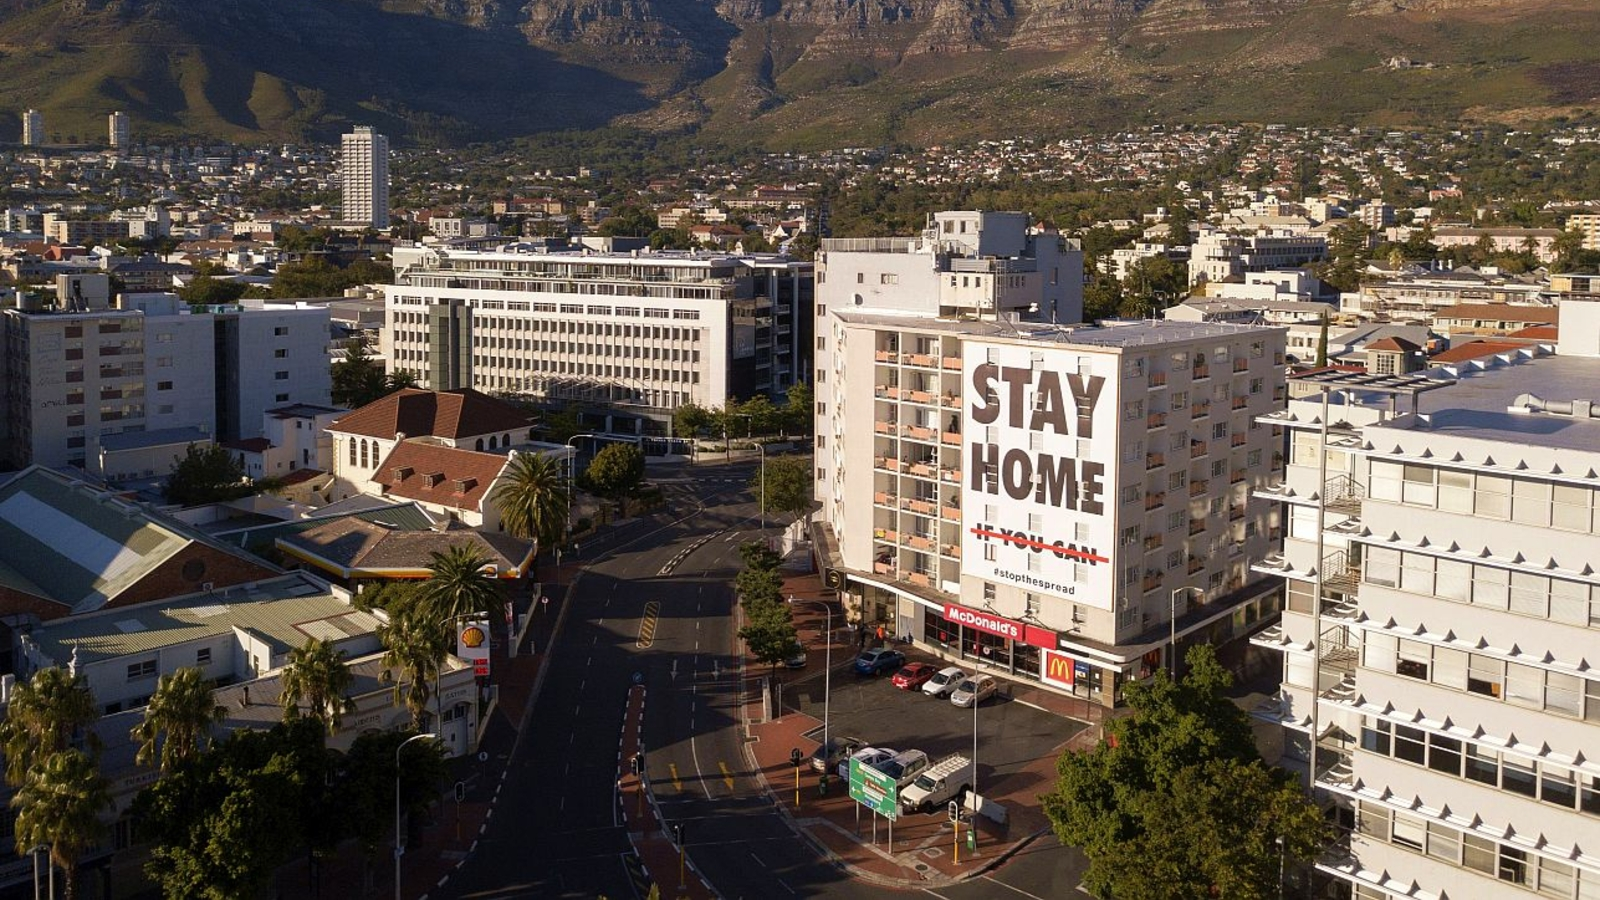 aerial view Cape Town, during the lockdown